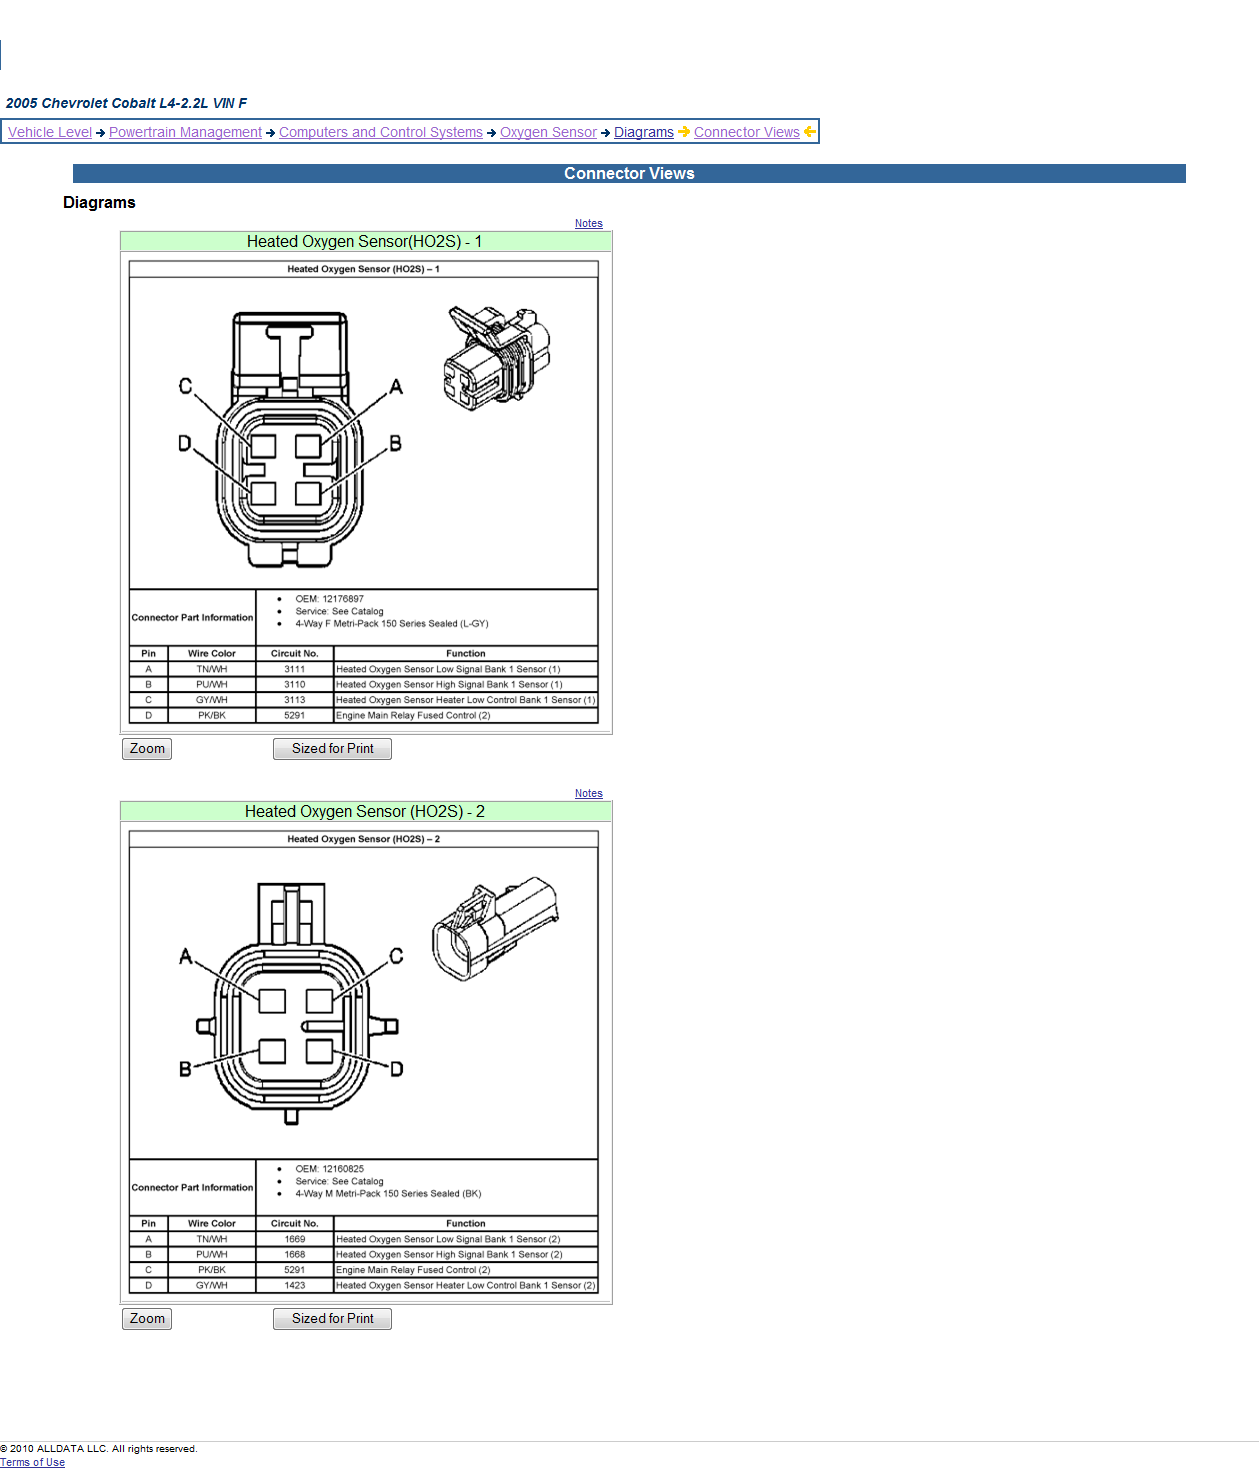 a4deda12a4f6d49137b2c3198e0ce0ff gm o2 sensor wiring diagram rough schematic engine wiring 2007 Silverado Fuse Diagram at pacquiaovsvargaslive.co